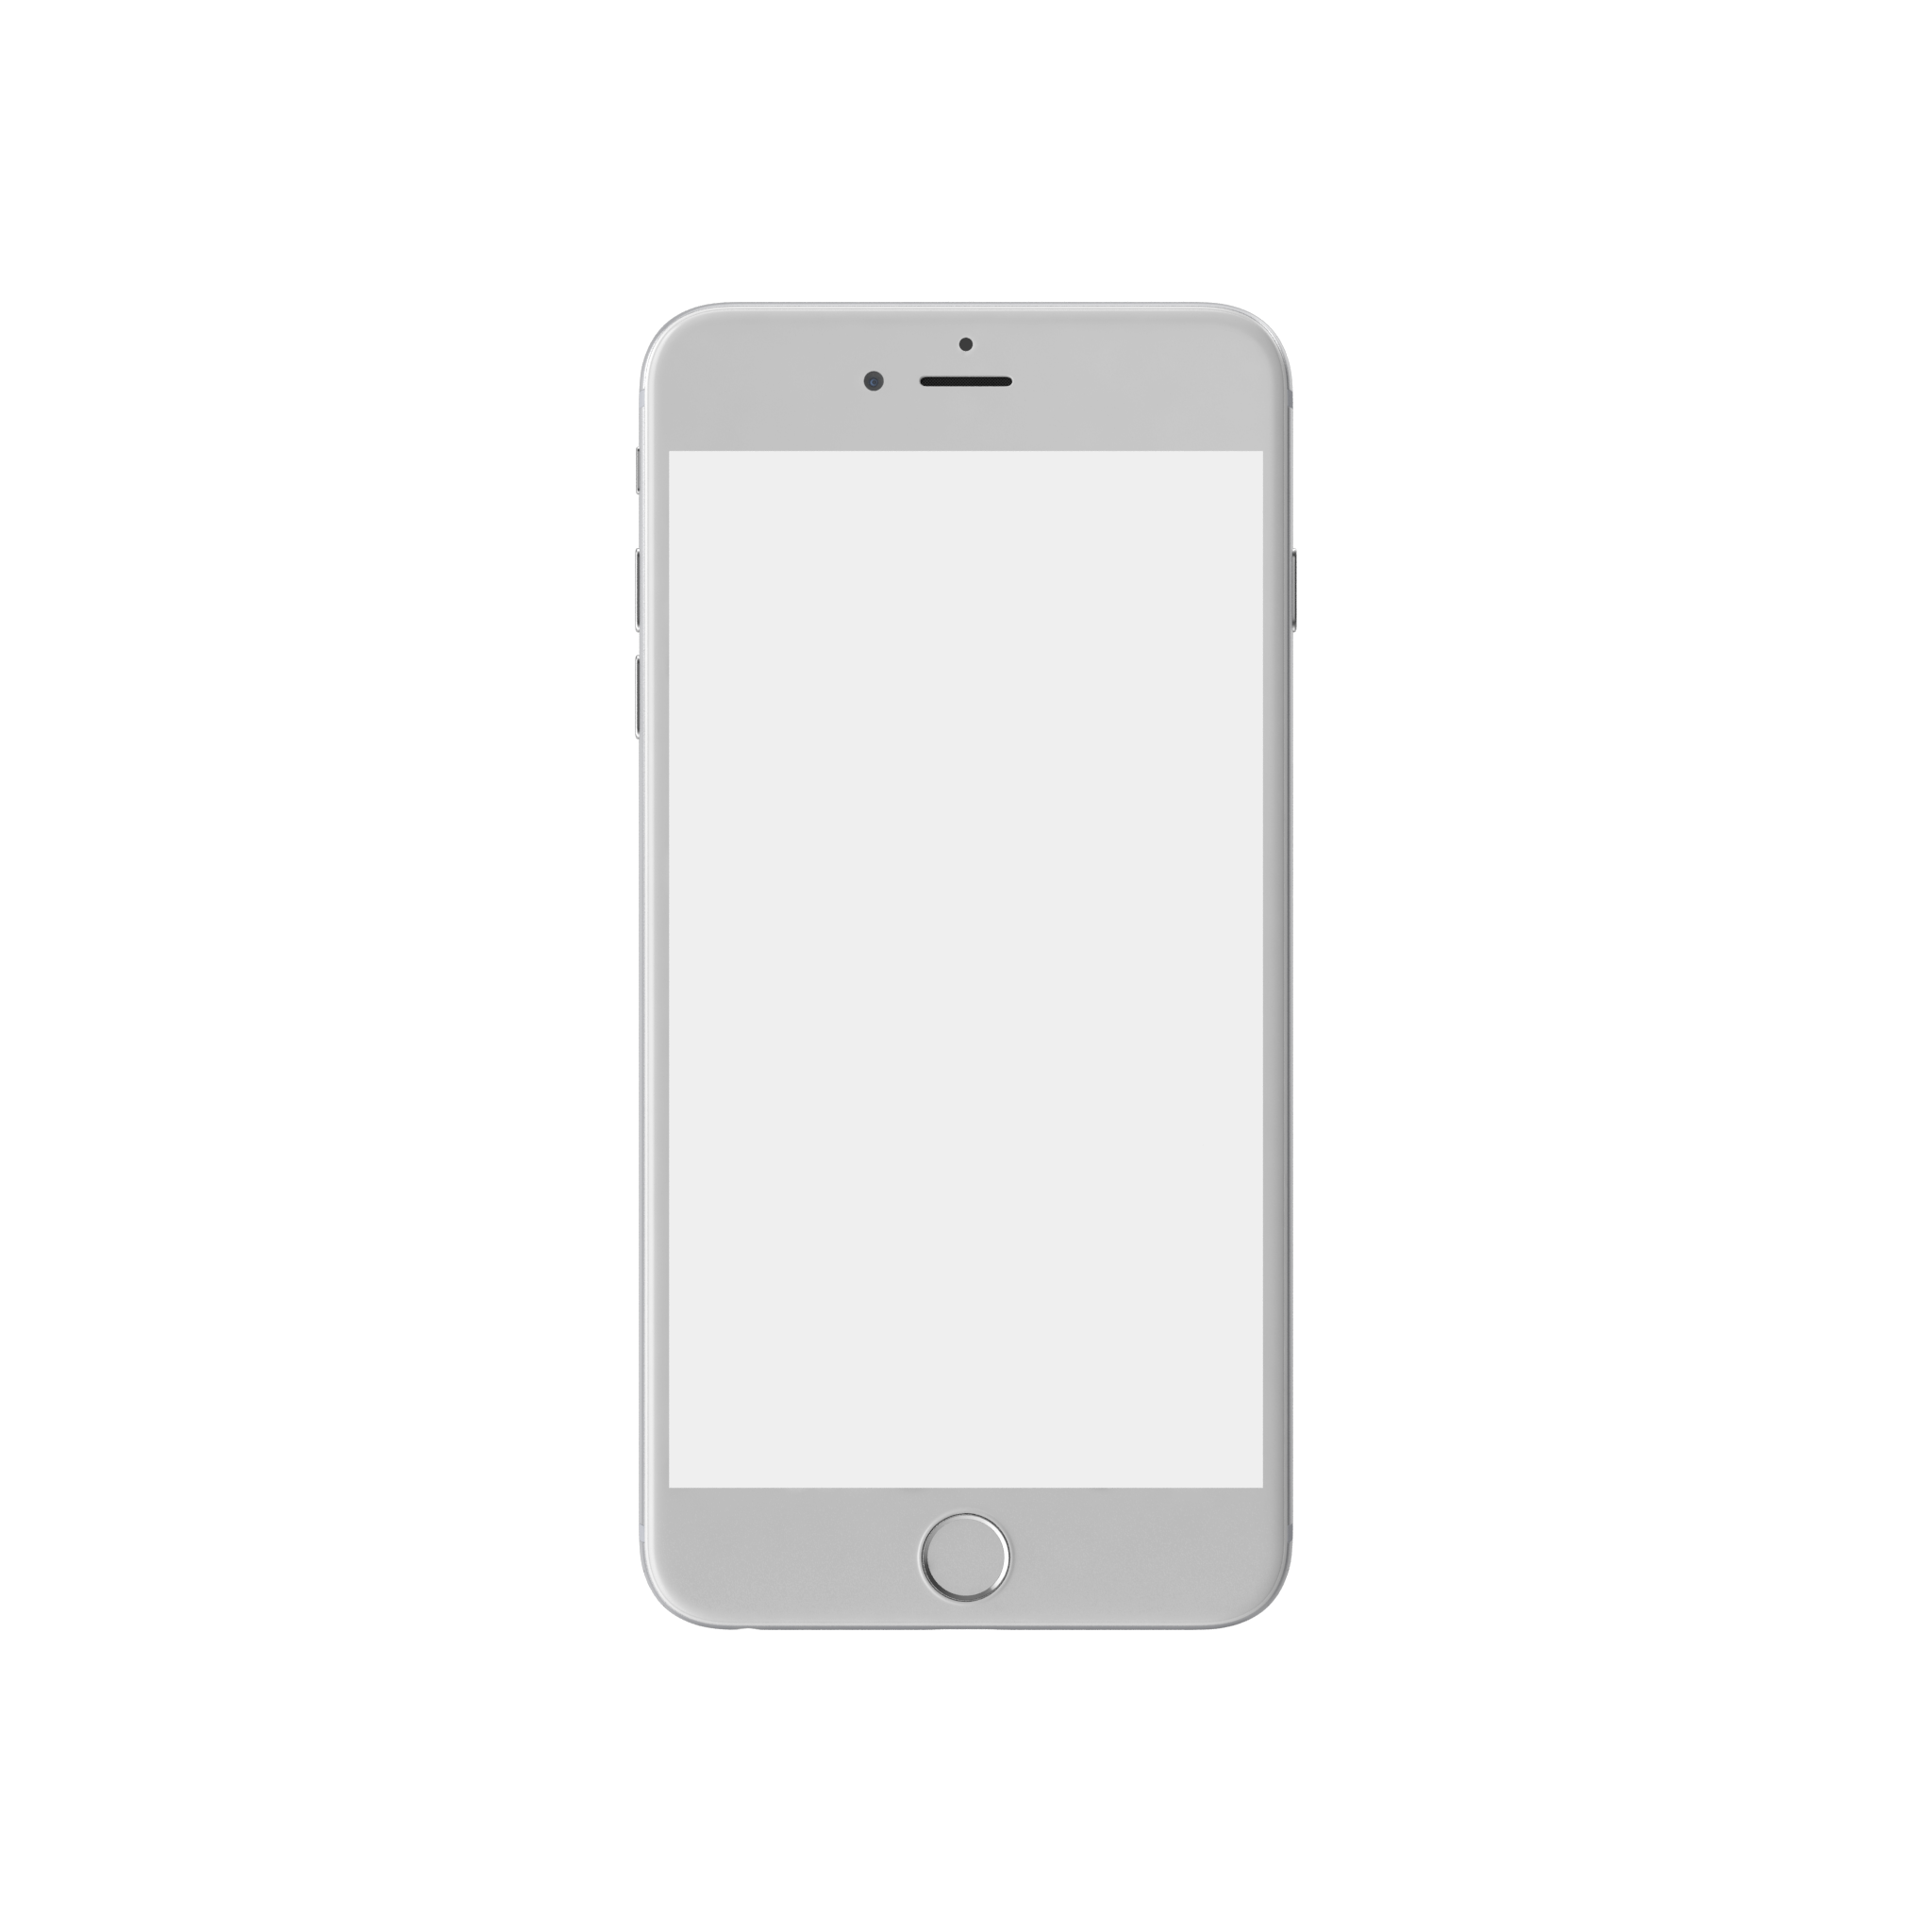 Iphone 6 Plus Silver Png Image Iphone Phone Iphone Instagram